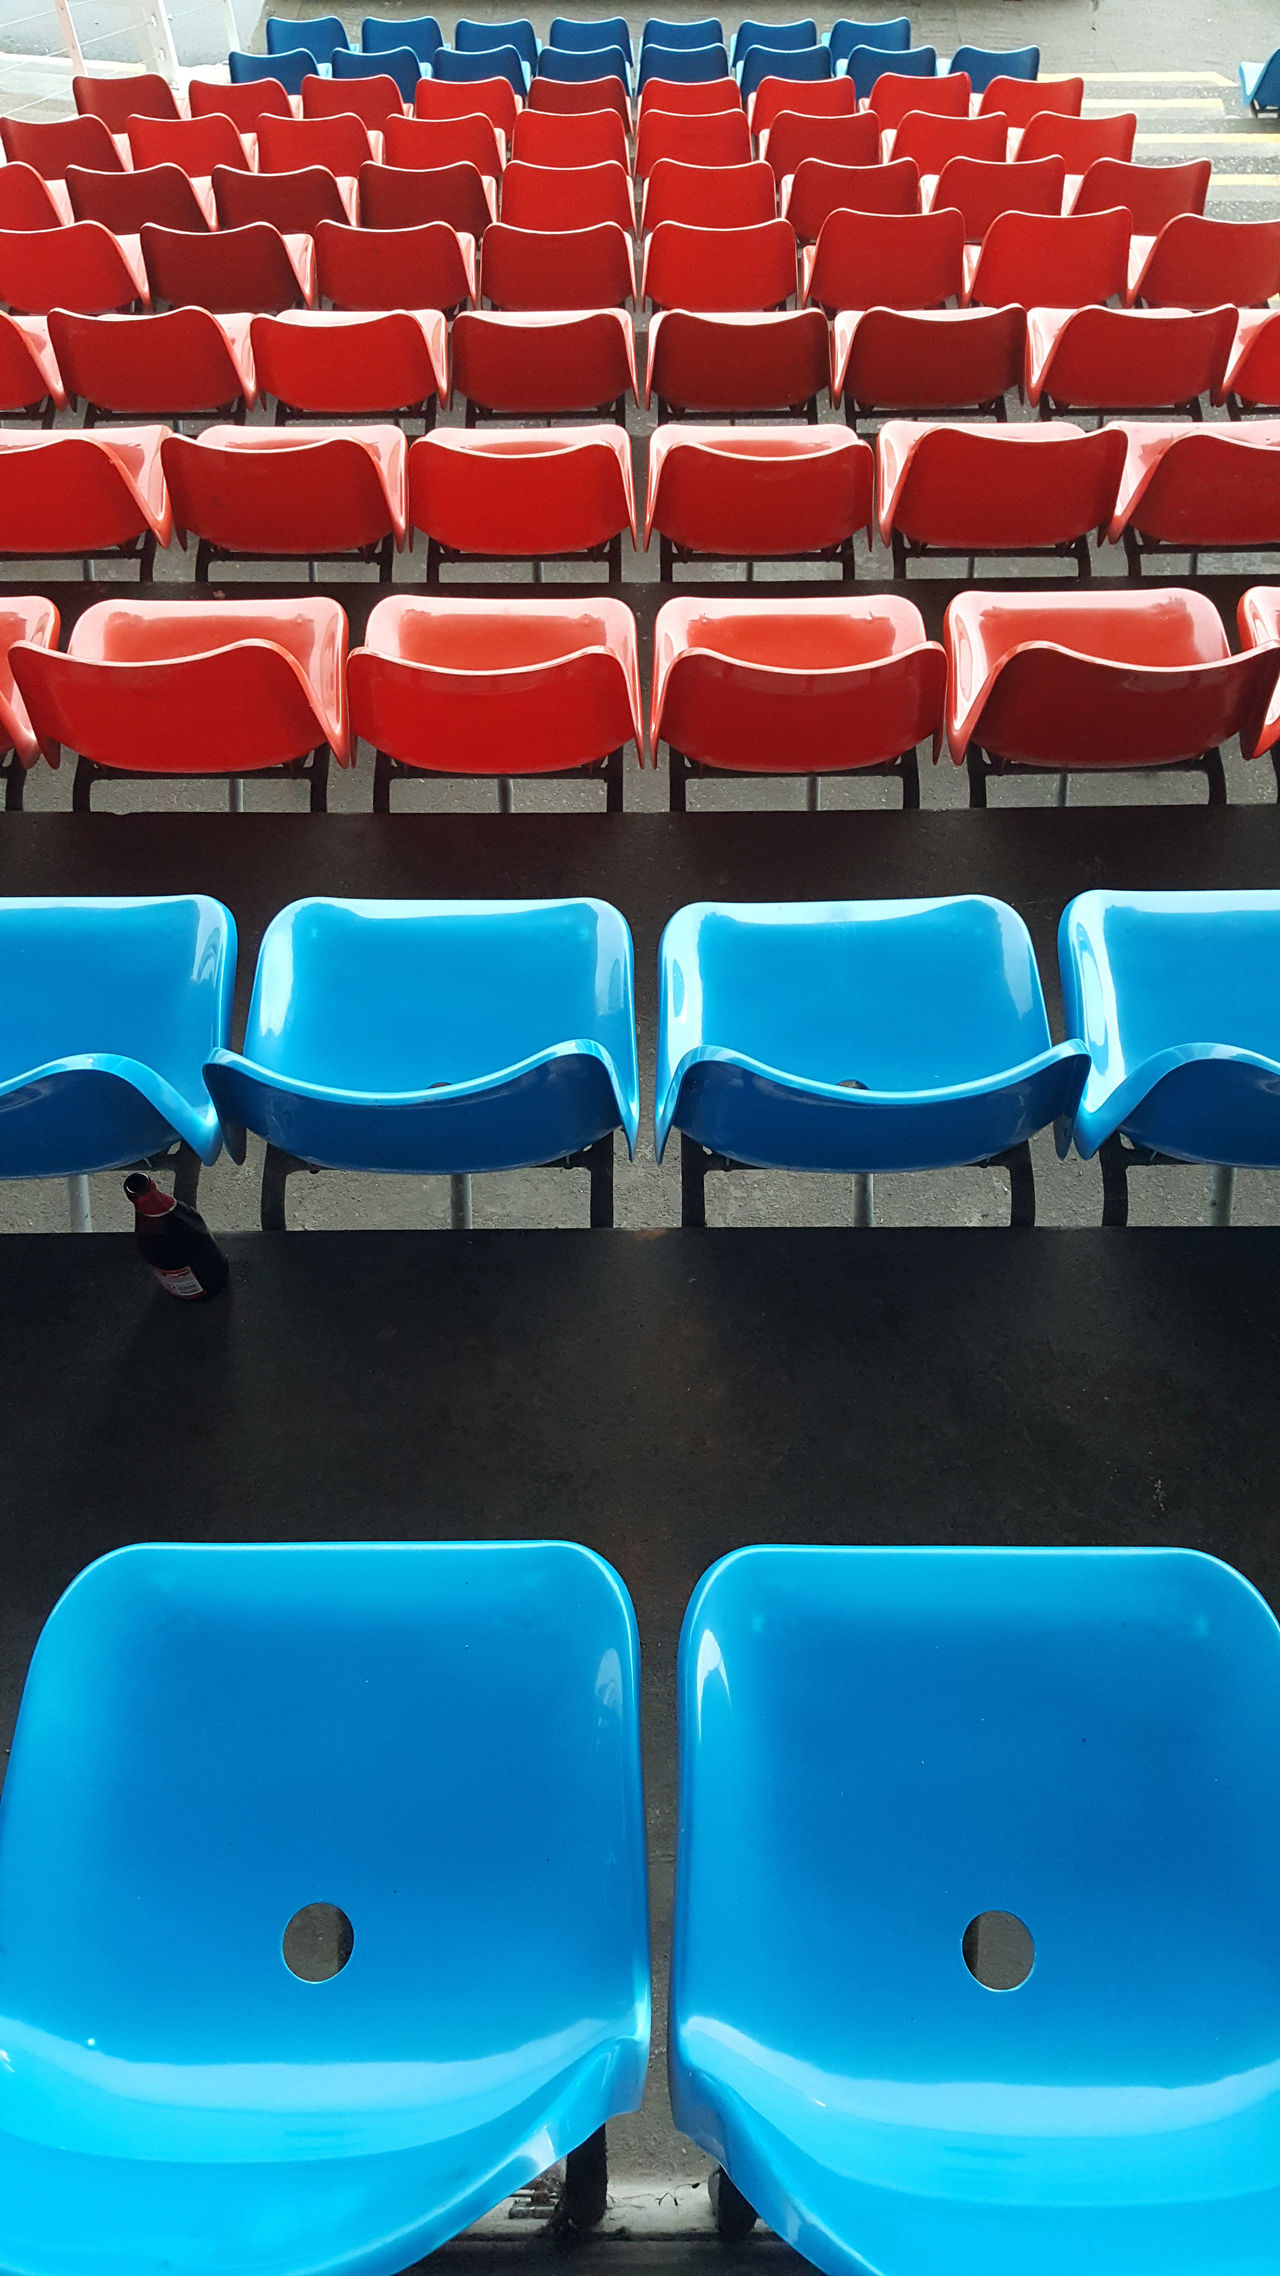 Leopardstown Racecourse Absence Blue Chair Empty In A Row No People Plastic Seating Red Seat